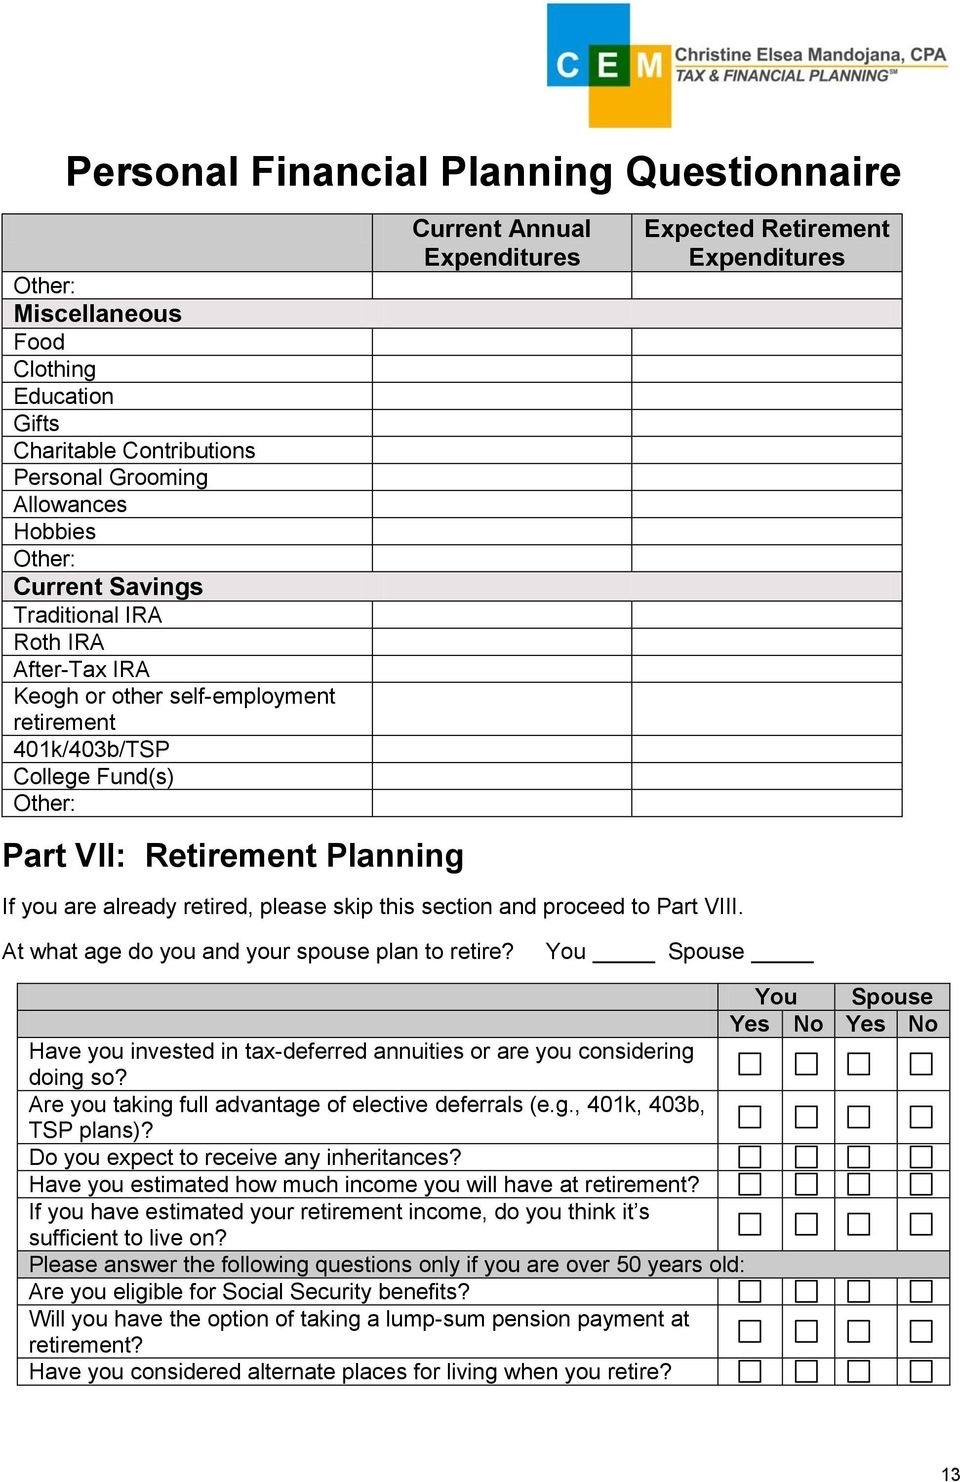 Personal Financial Planning Questionnaire - PDF